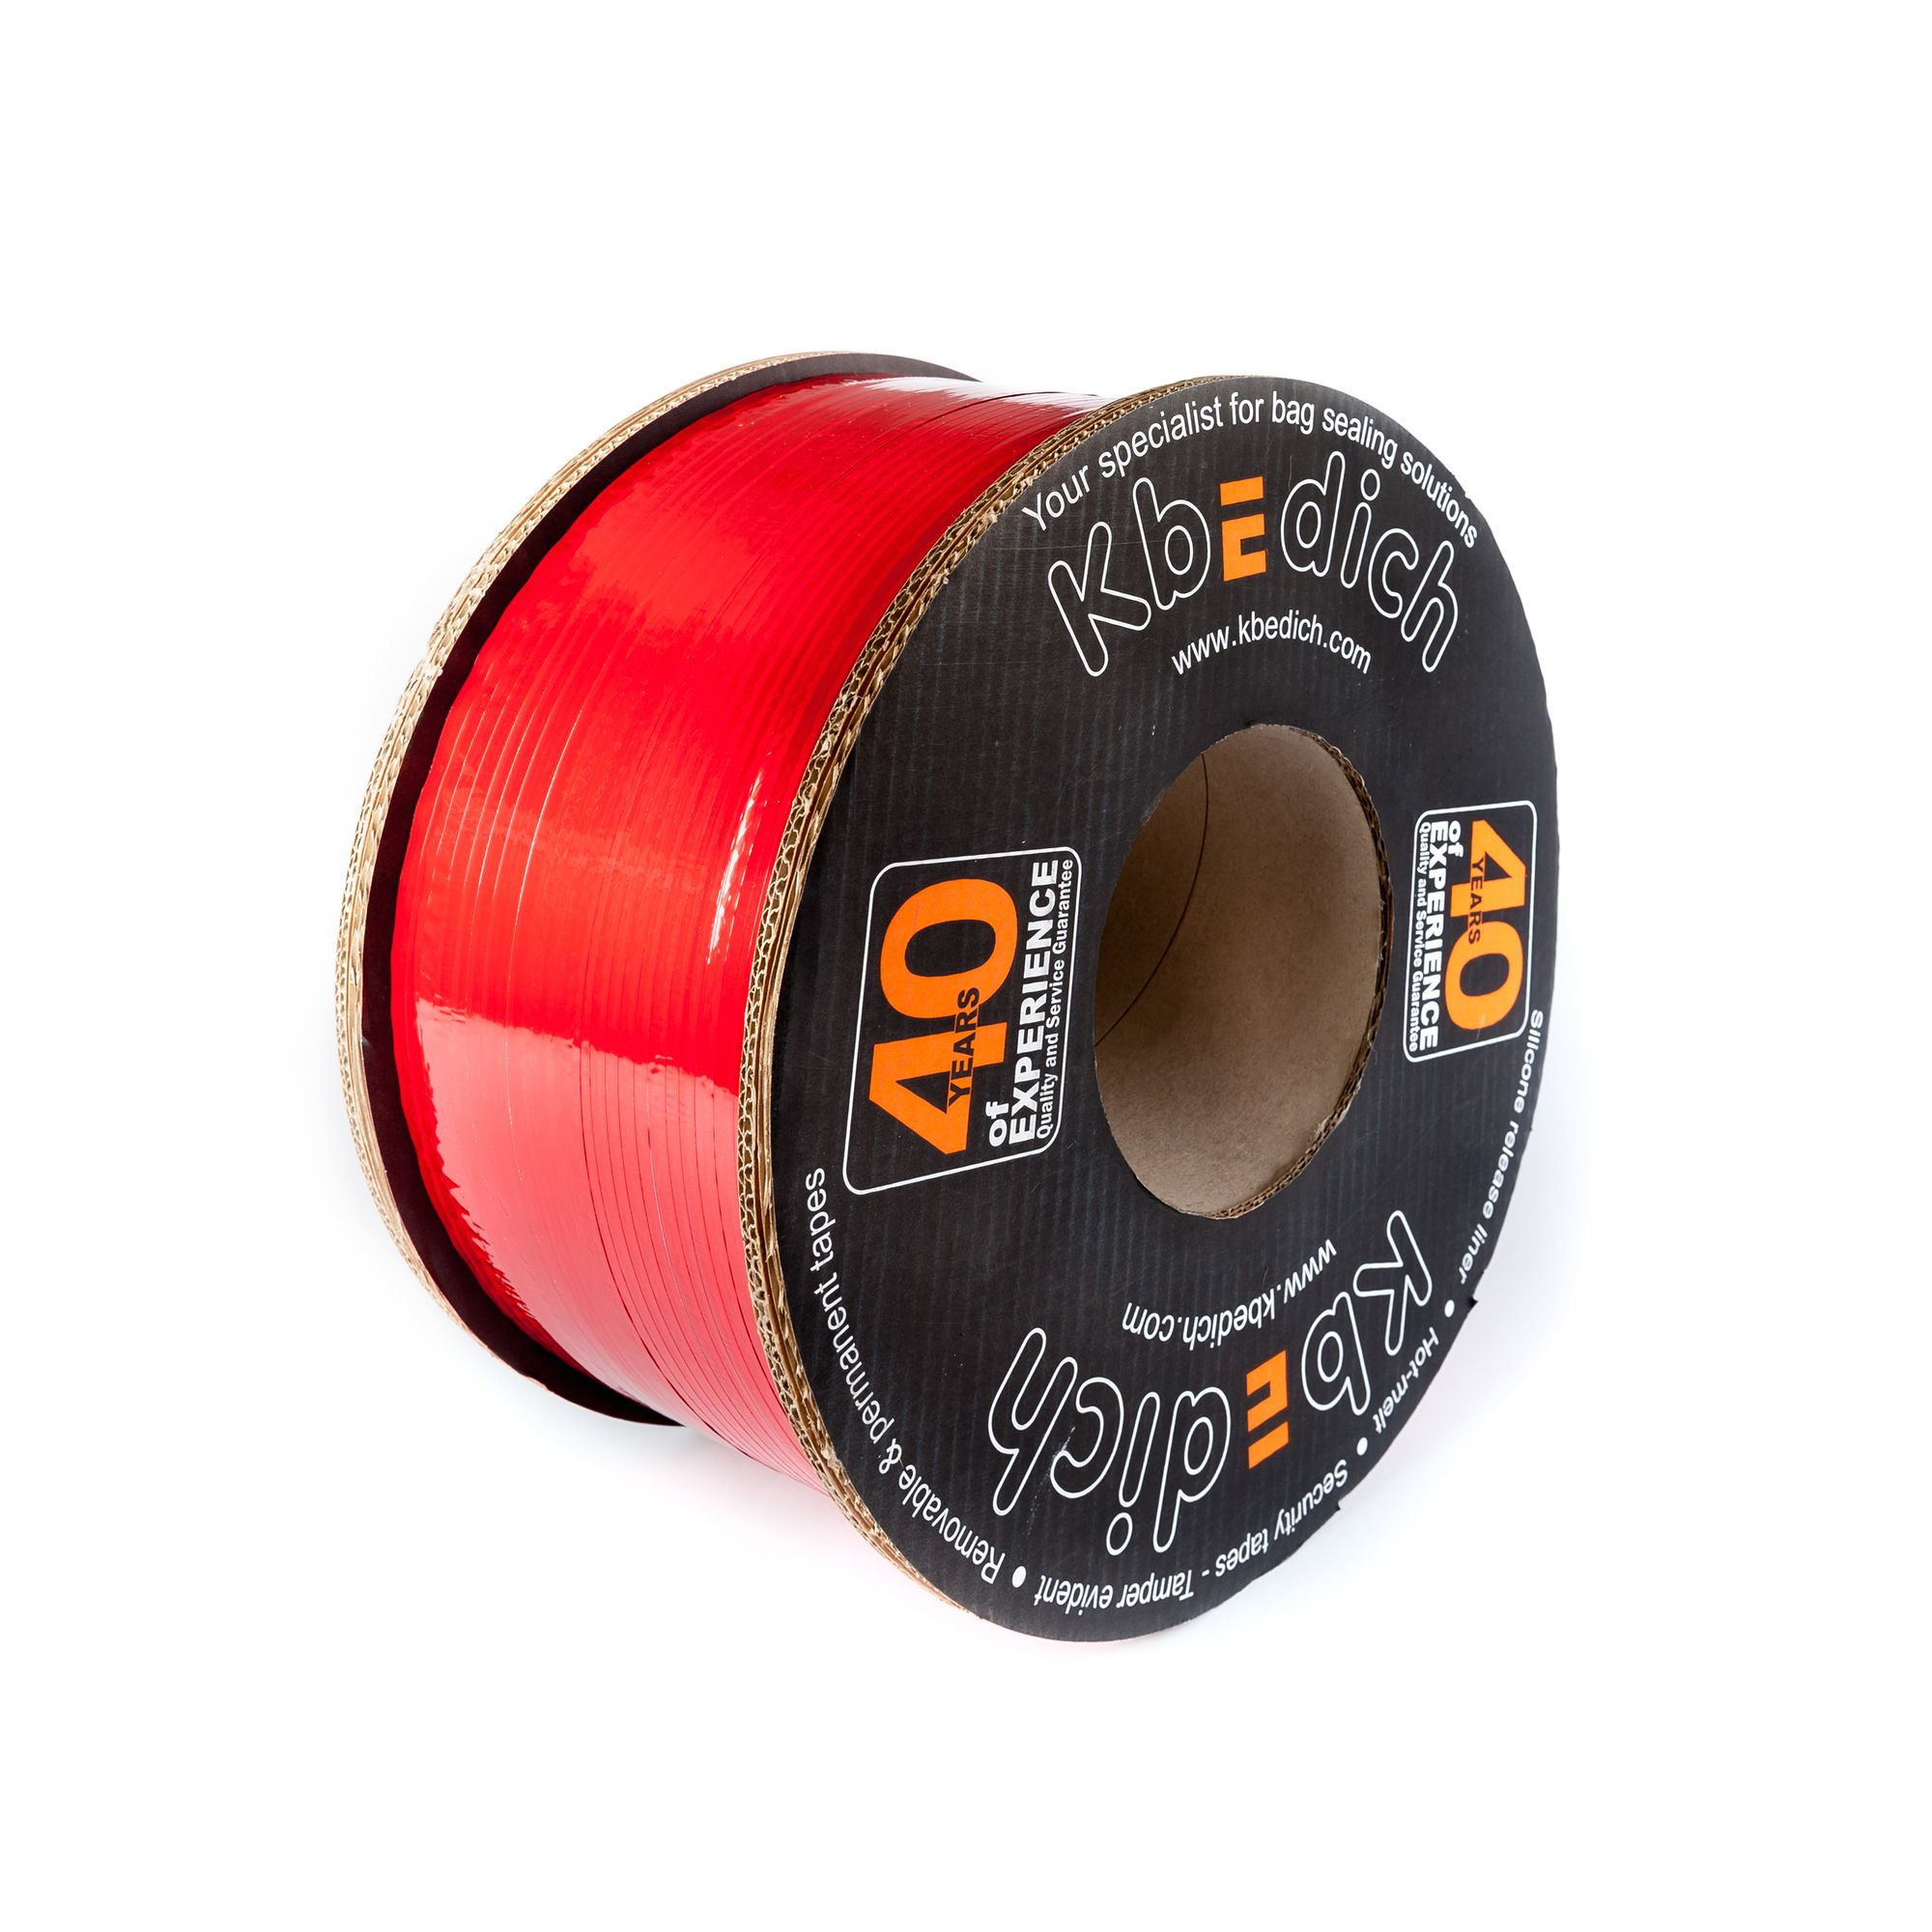 Film transfers – Tamper evident – Certified by Applus – Permanent tape closures – Permanent tape closures  – Hotmelt adhesive  – Hotmelt adhesive  – The security tape company  – Reseleable tape Closures – Silicone release liner – http://www.kbedich.com